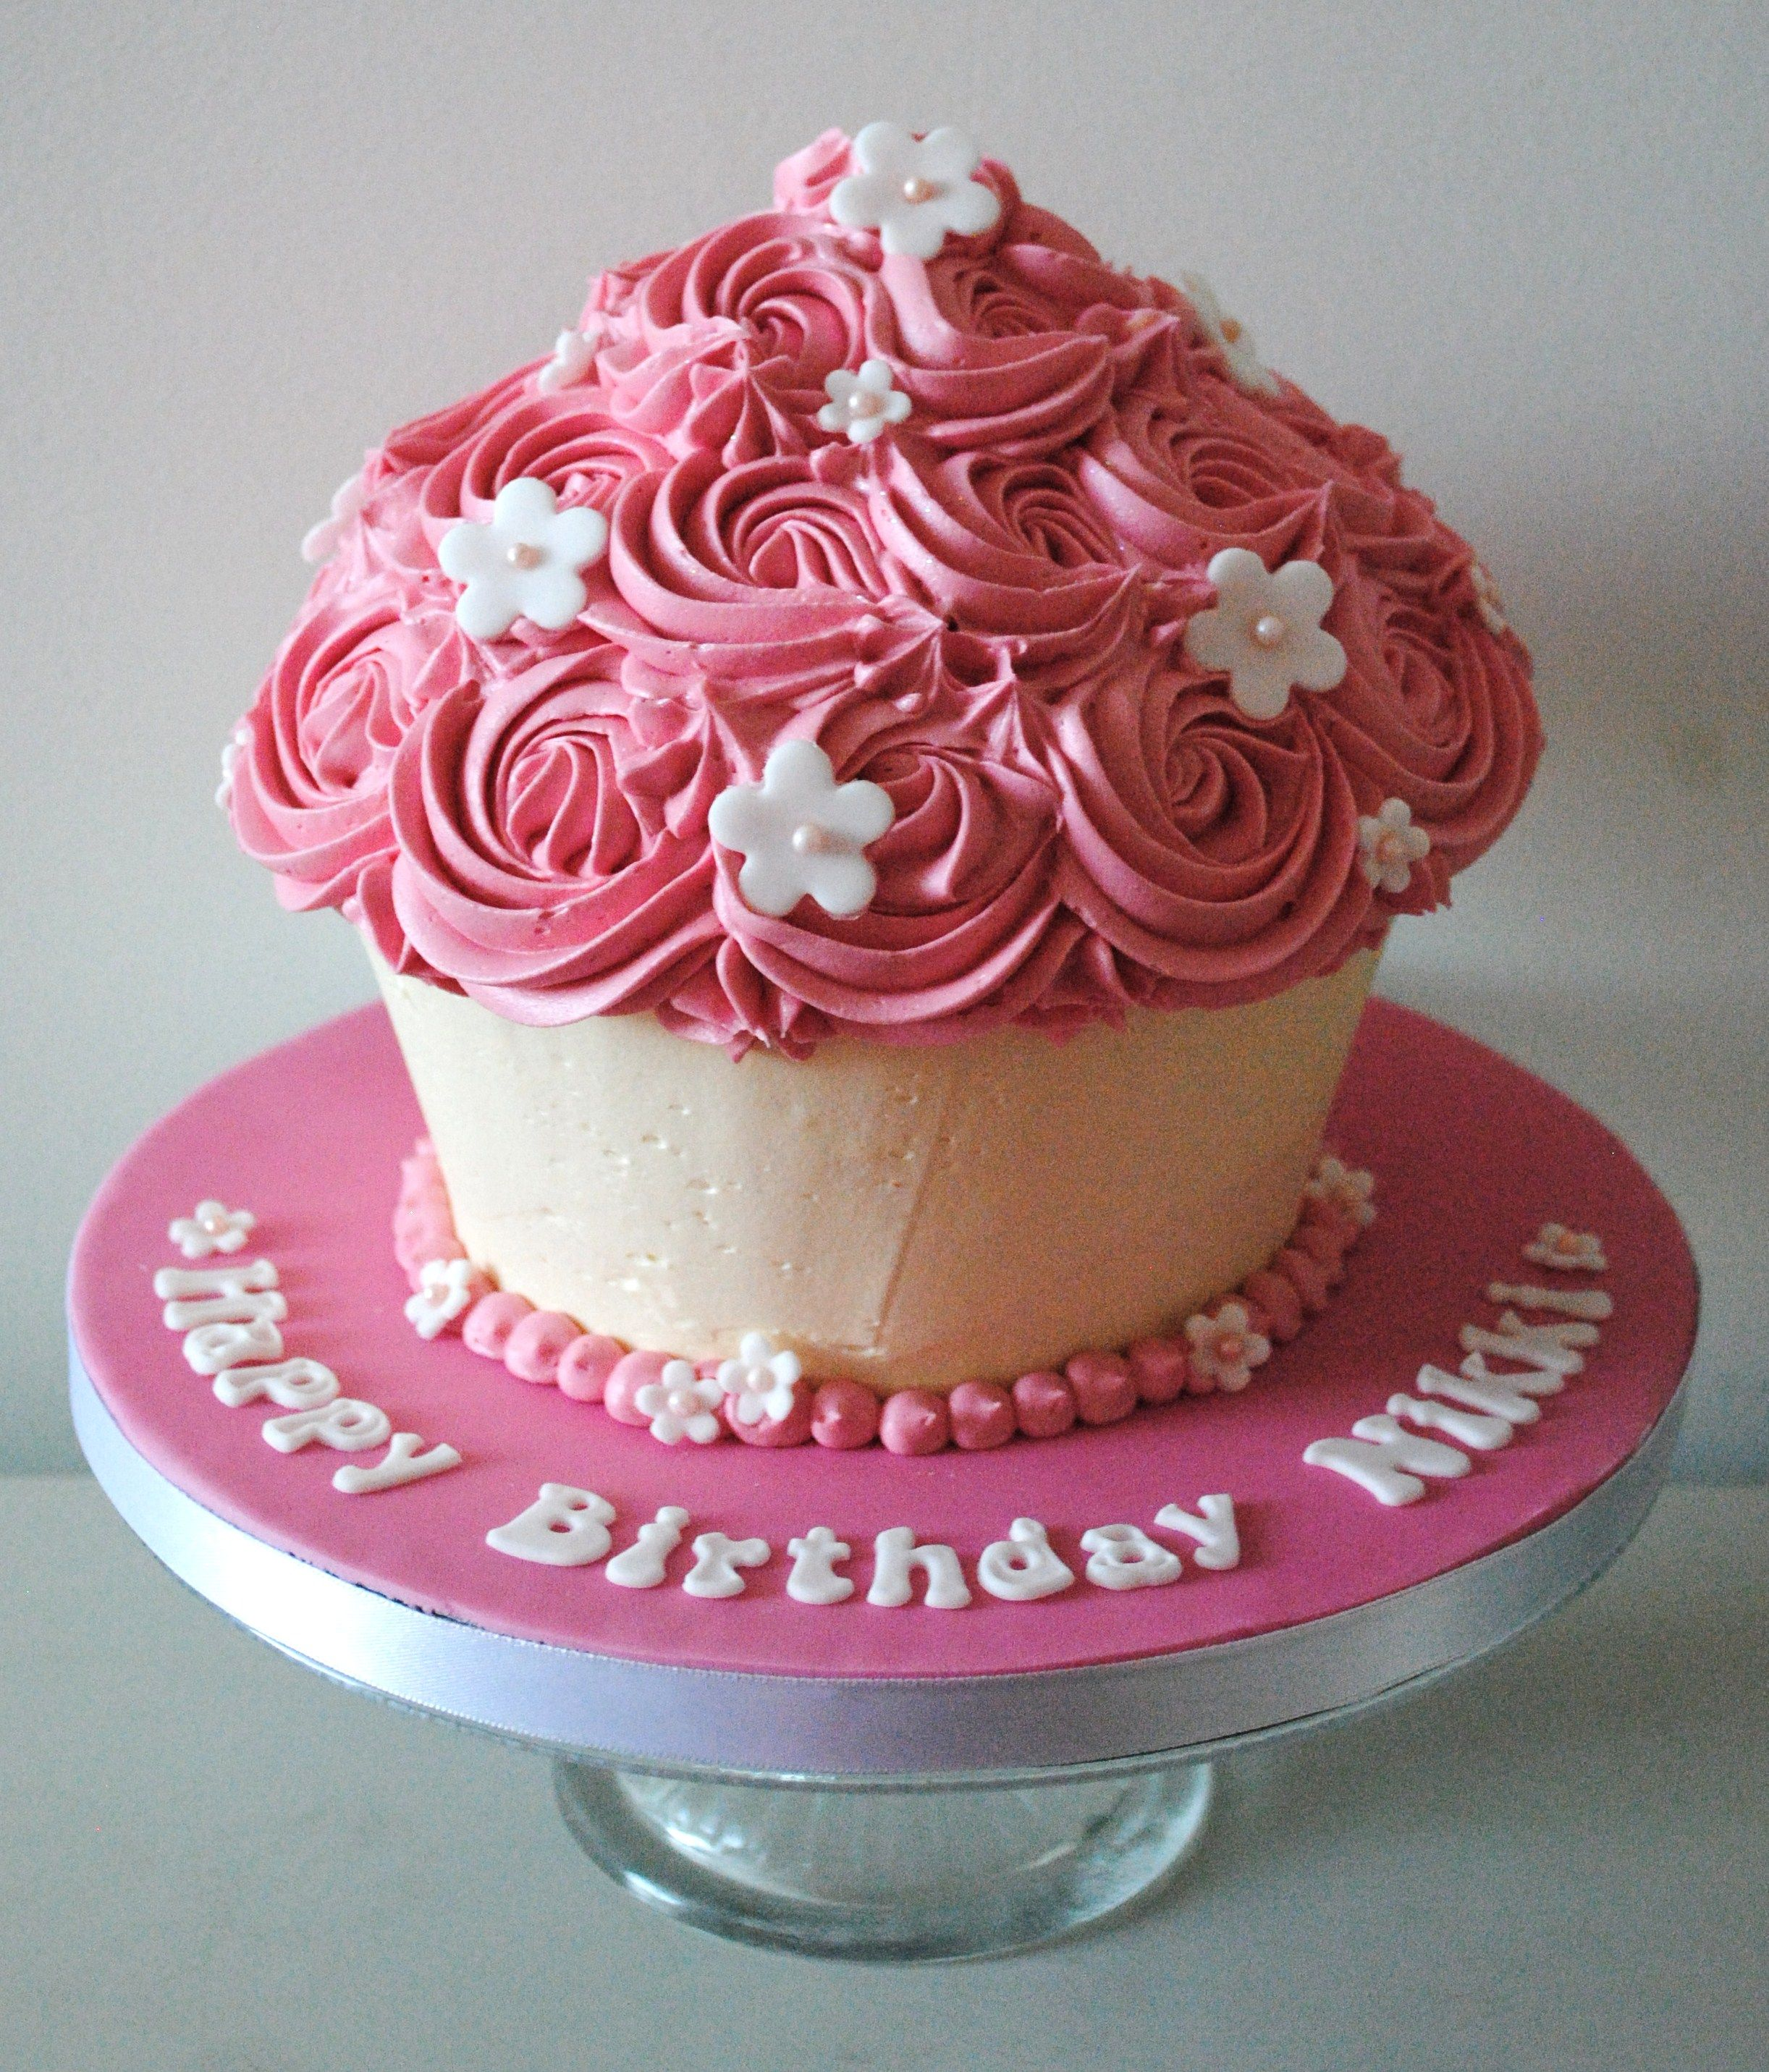 Birthday Cupcakes Designs: Giant Cupcake Cake - Google Search